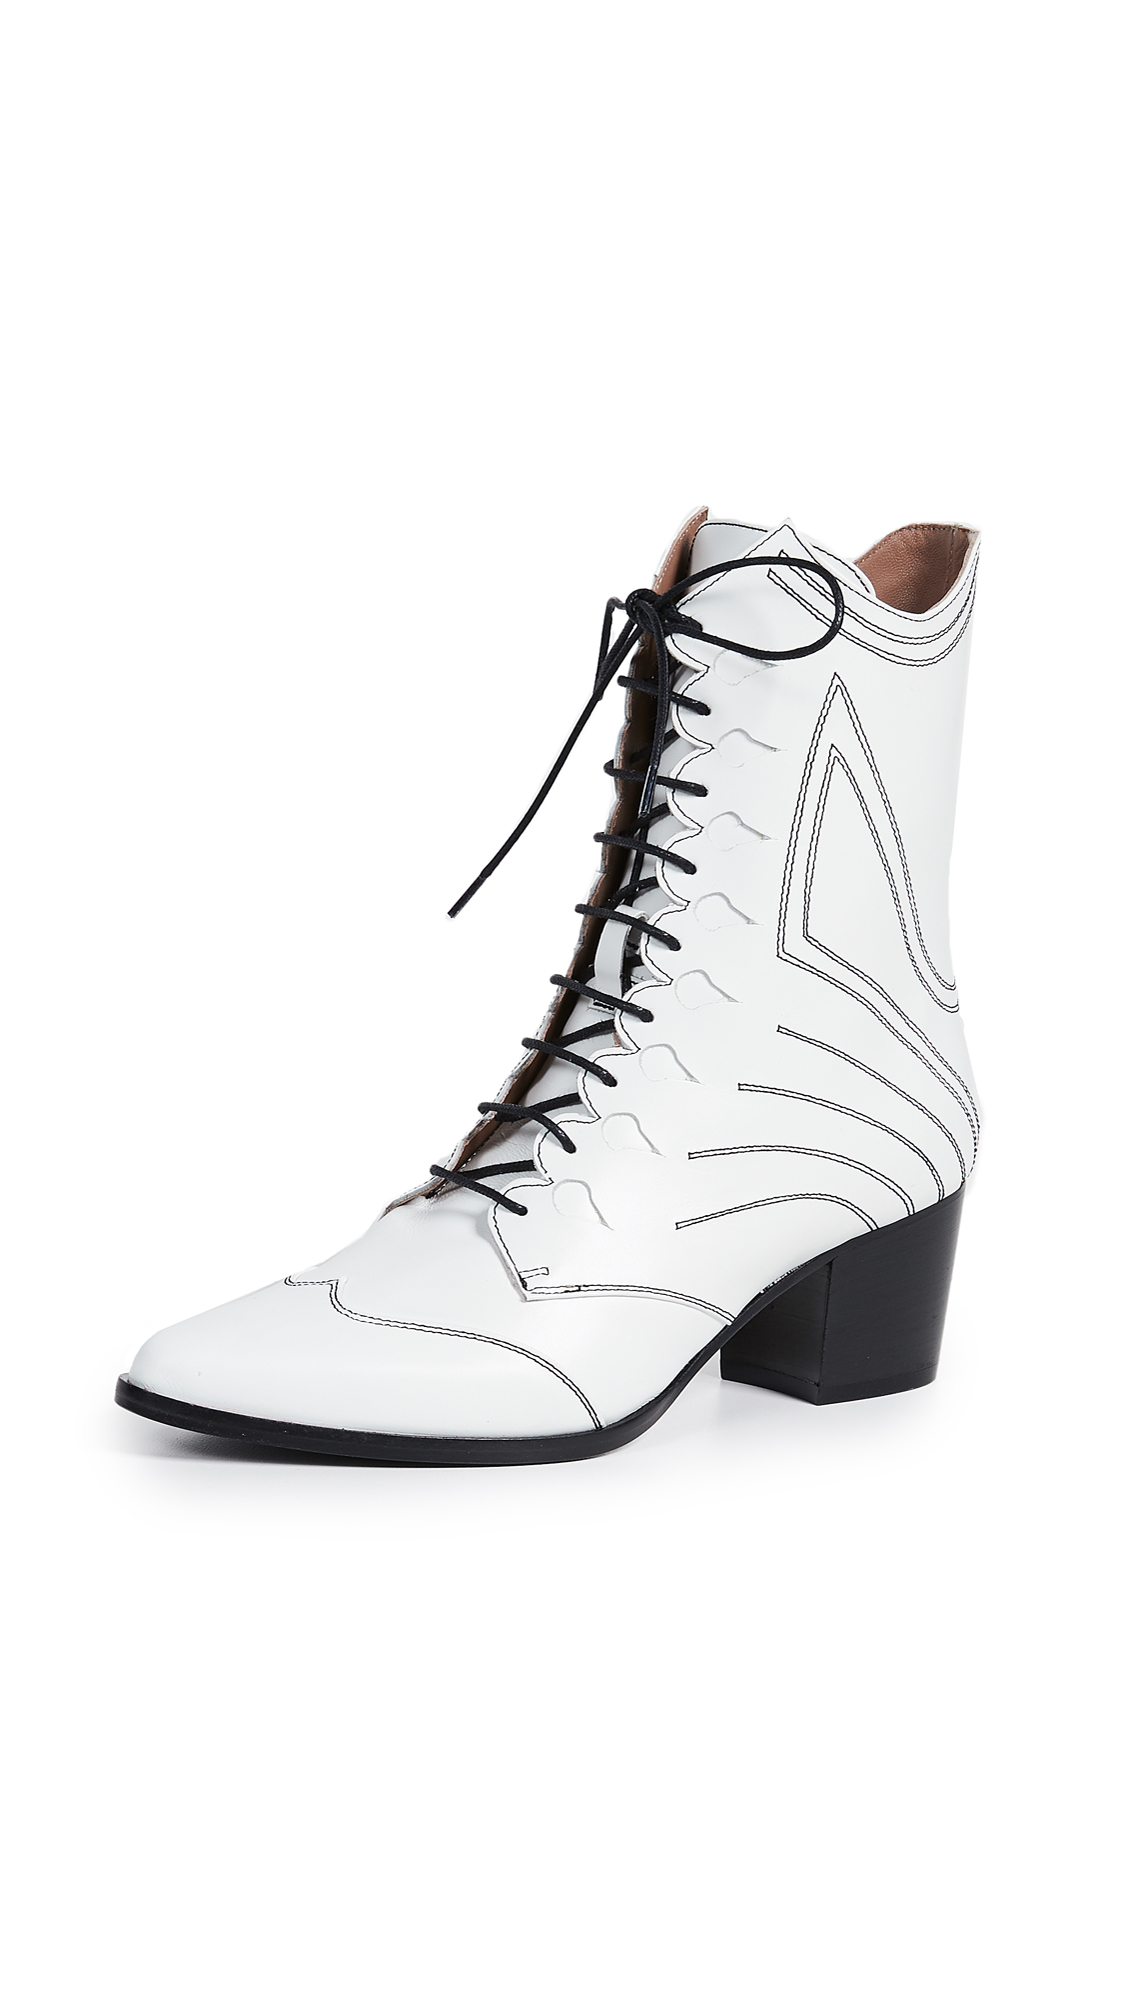 Tabitha Simmons Swing Boots - White